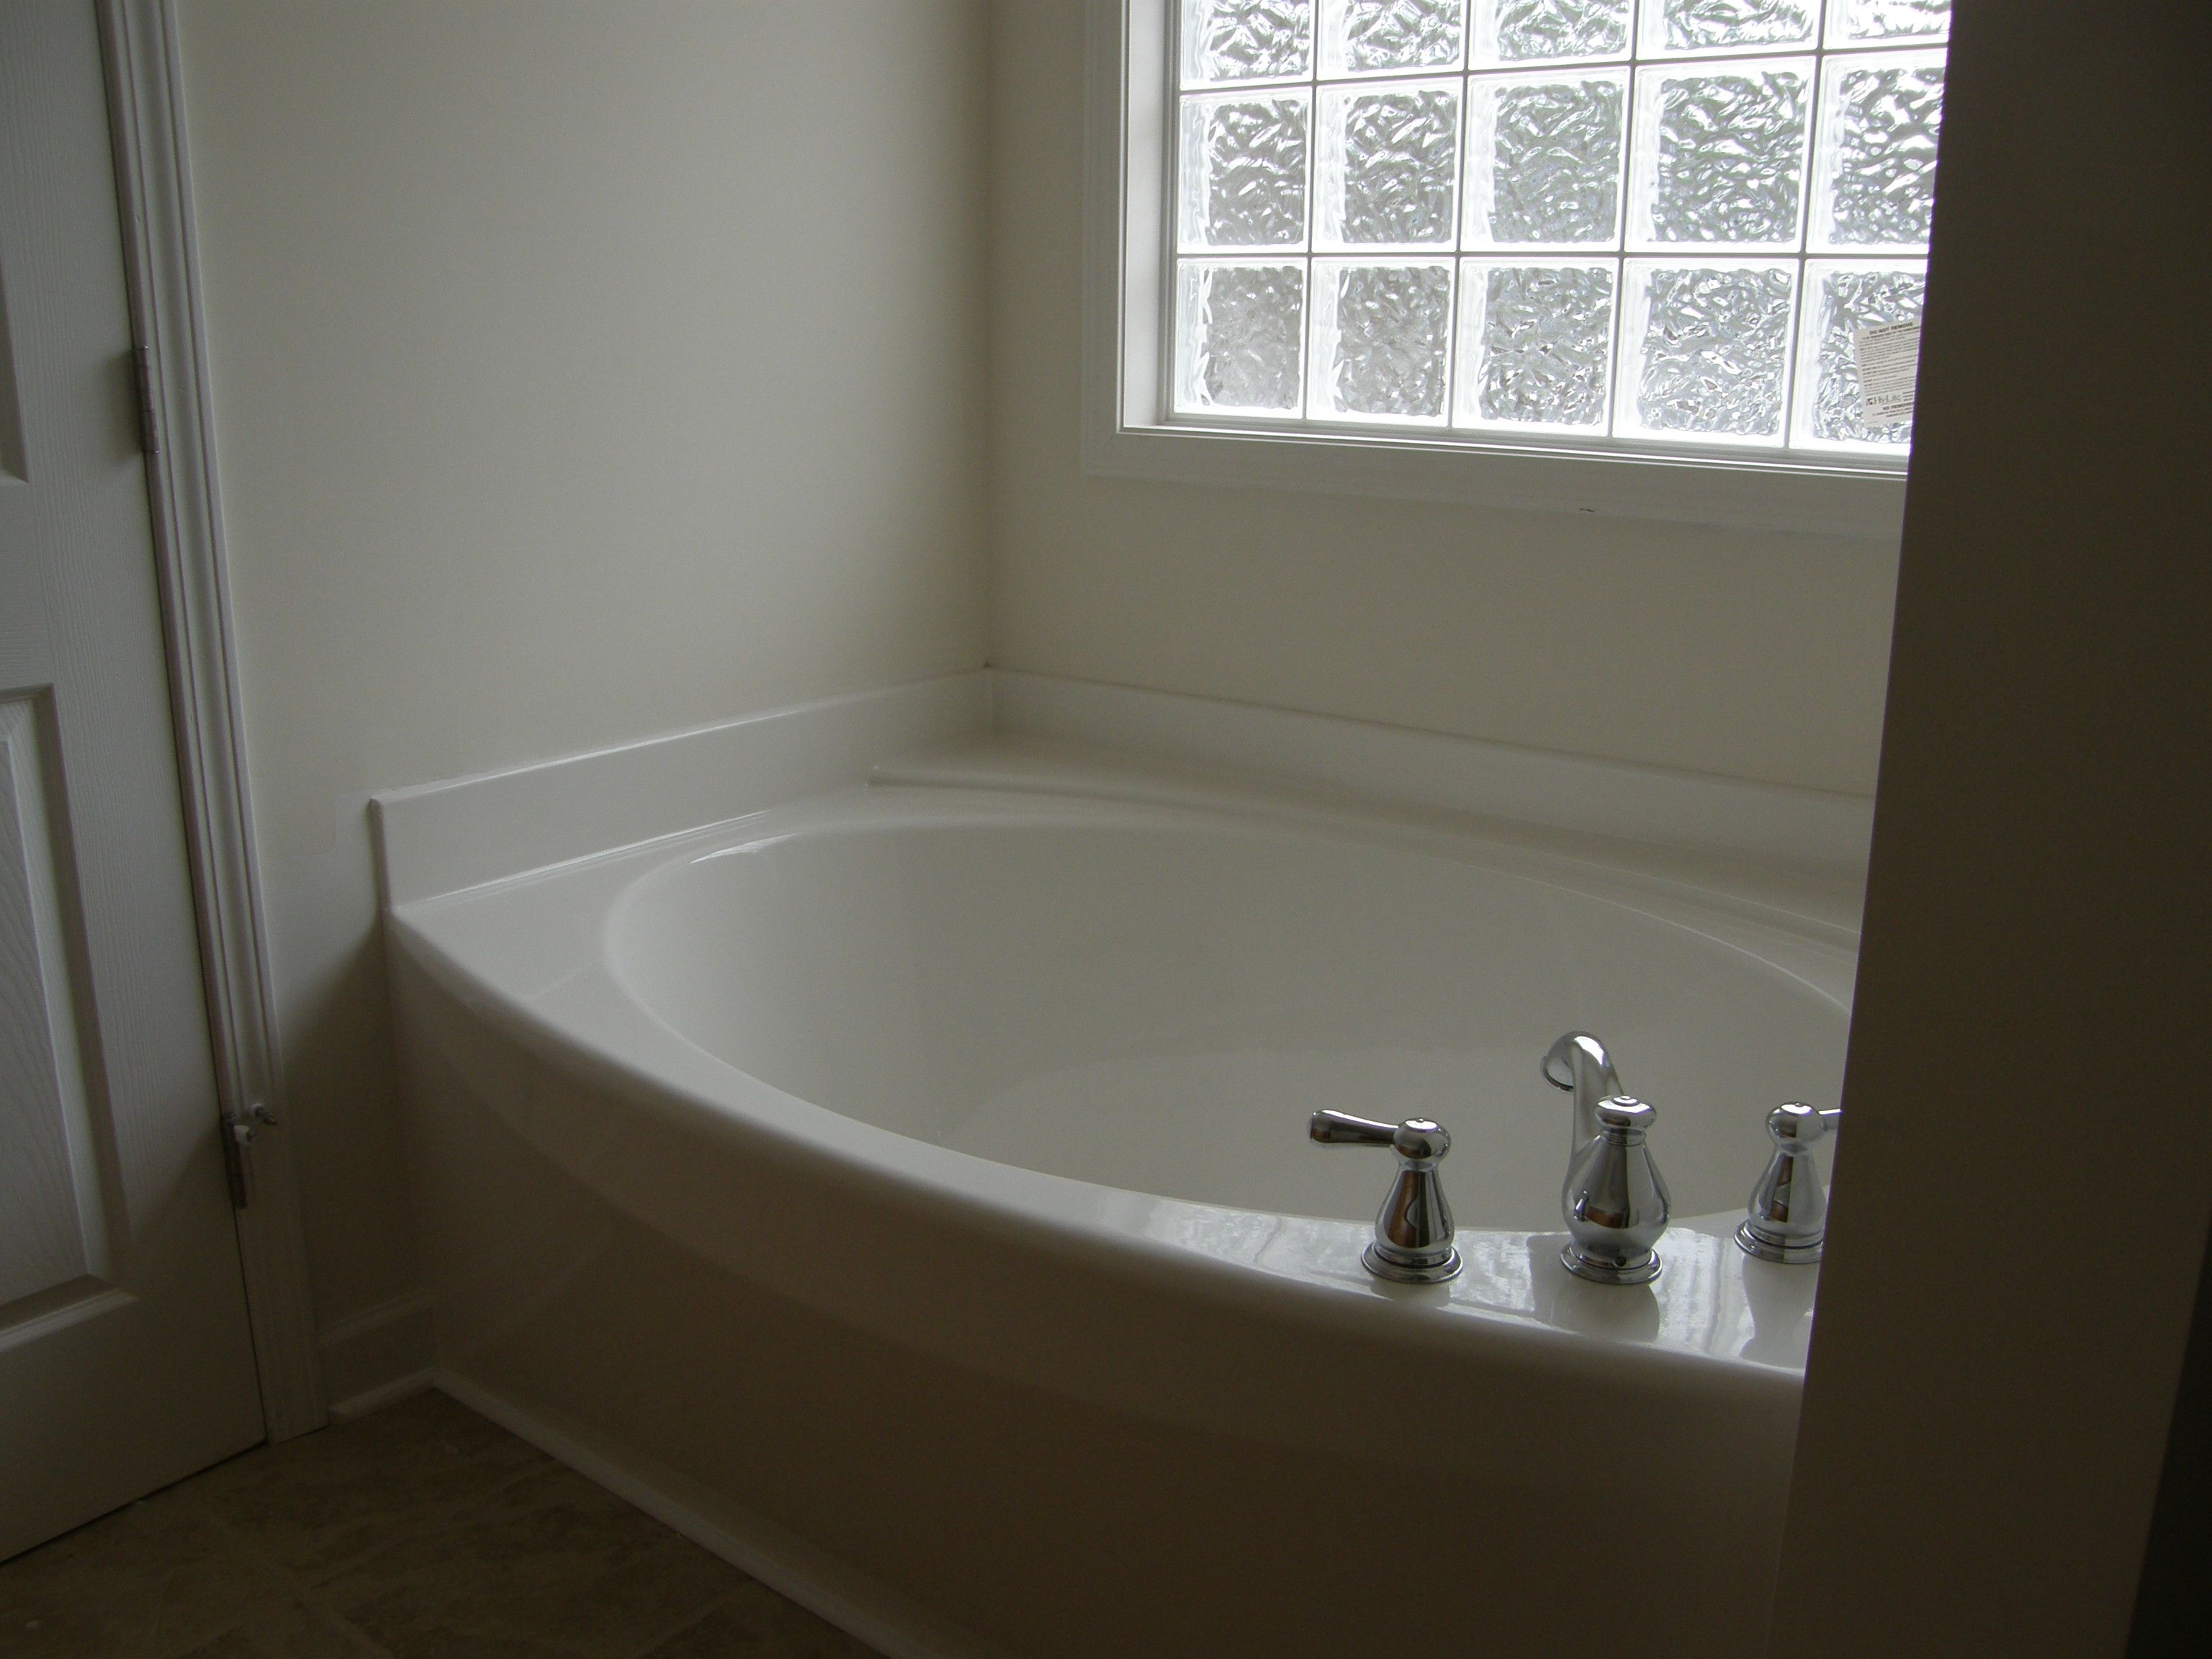 Garden Soaking Tub | Garden Tub Installation | BATH1IDEAS ...